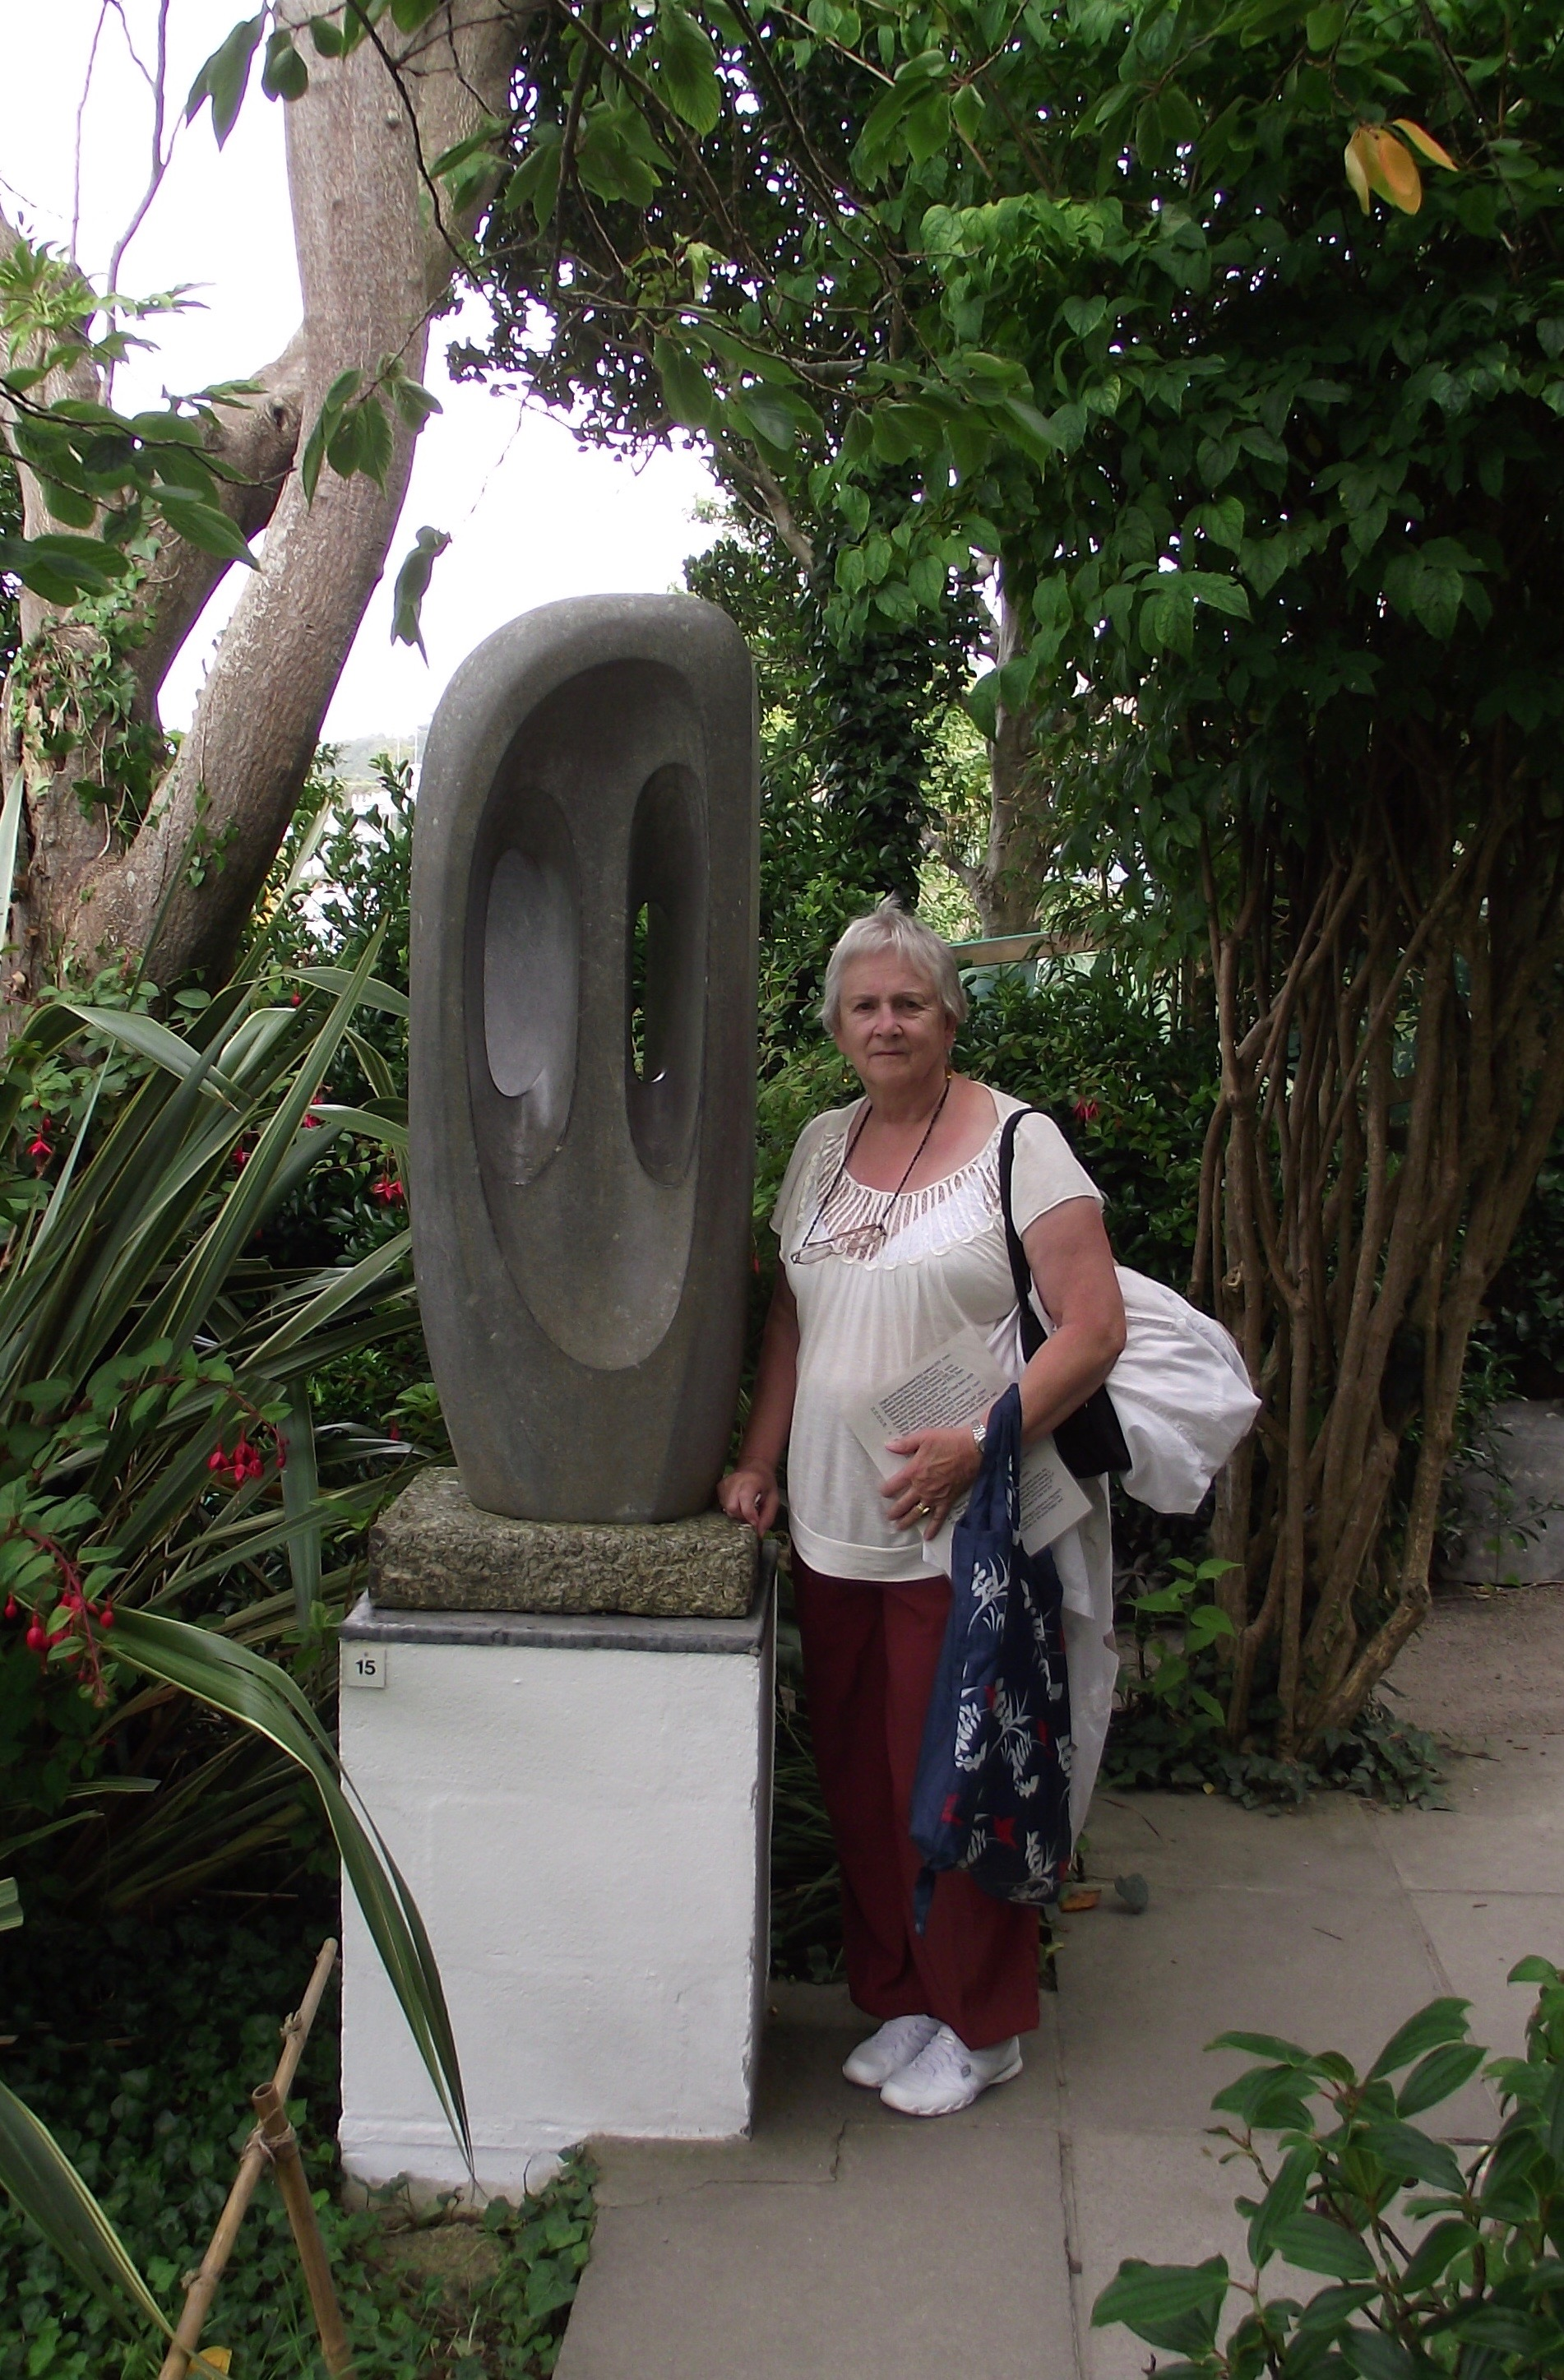 Arliss with a Hepworth sculpture in the garden of Trewyn studio.